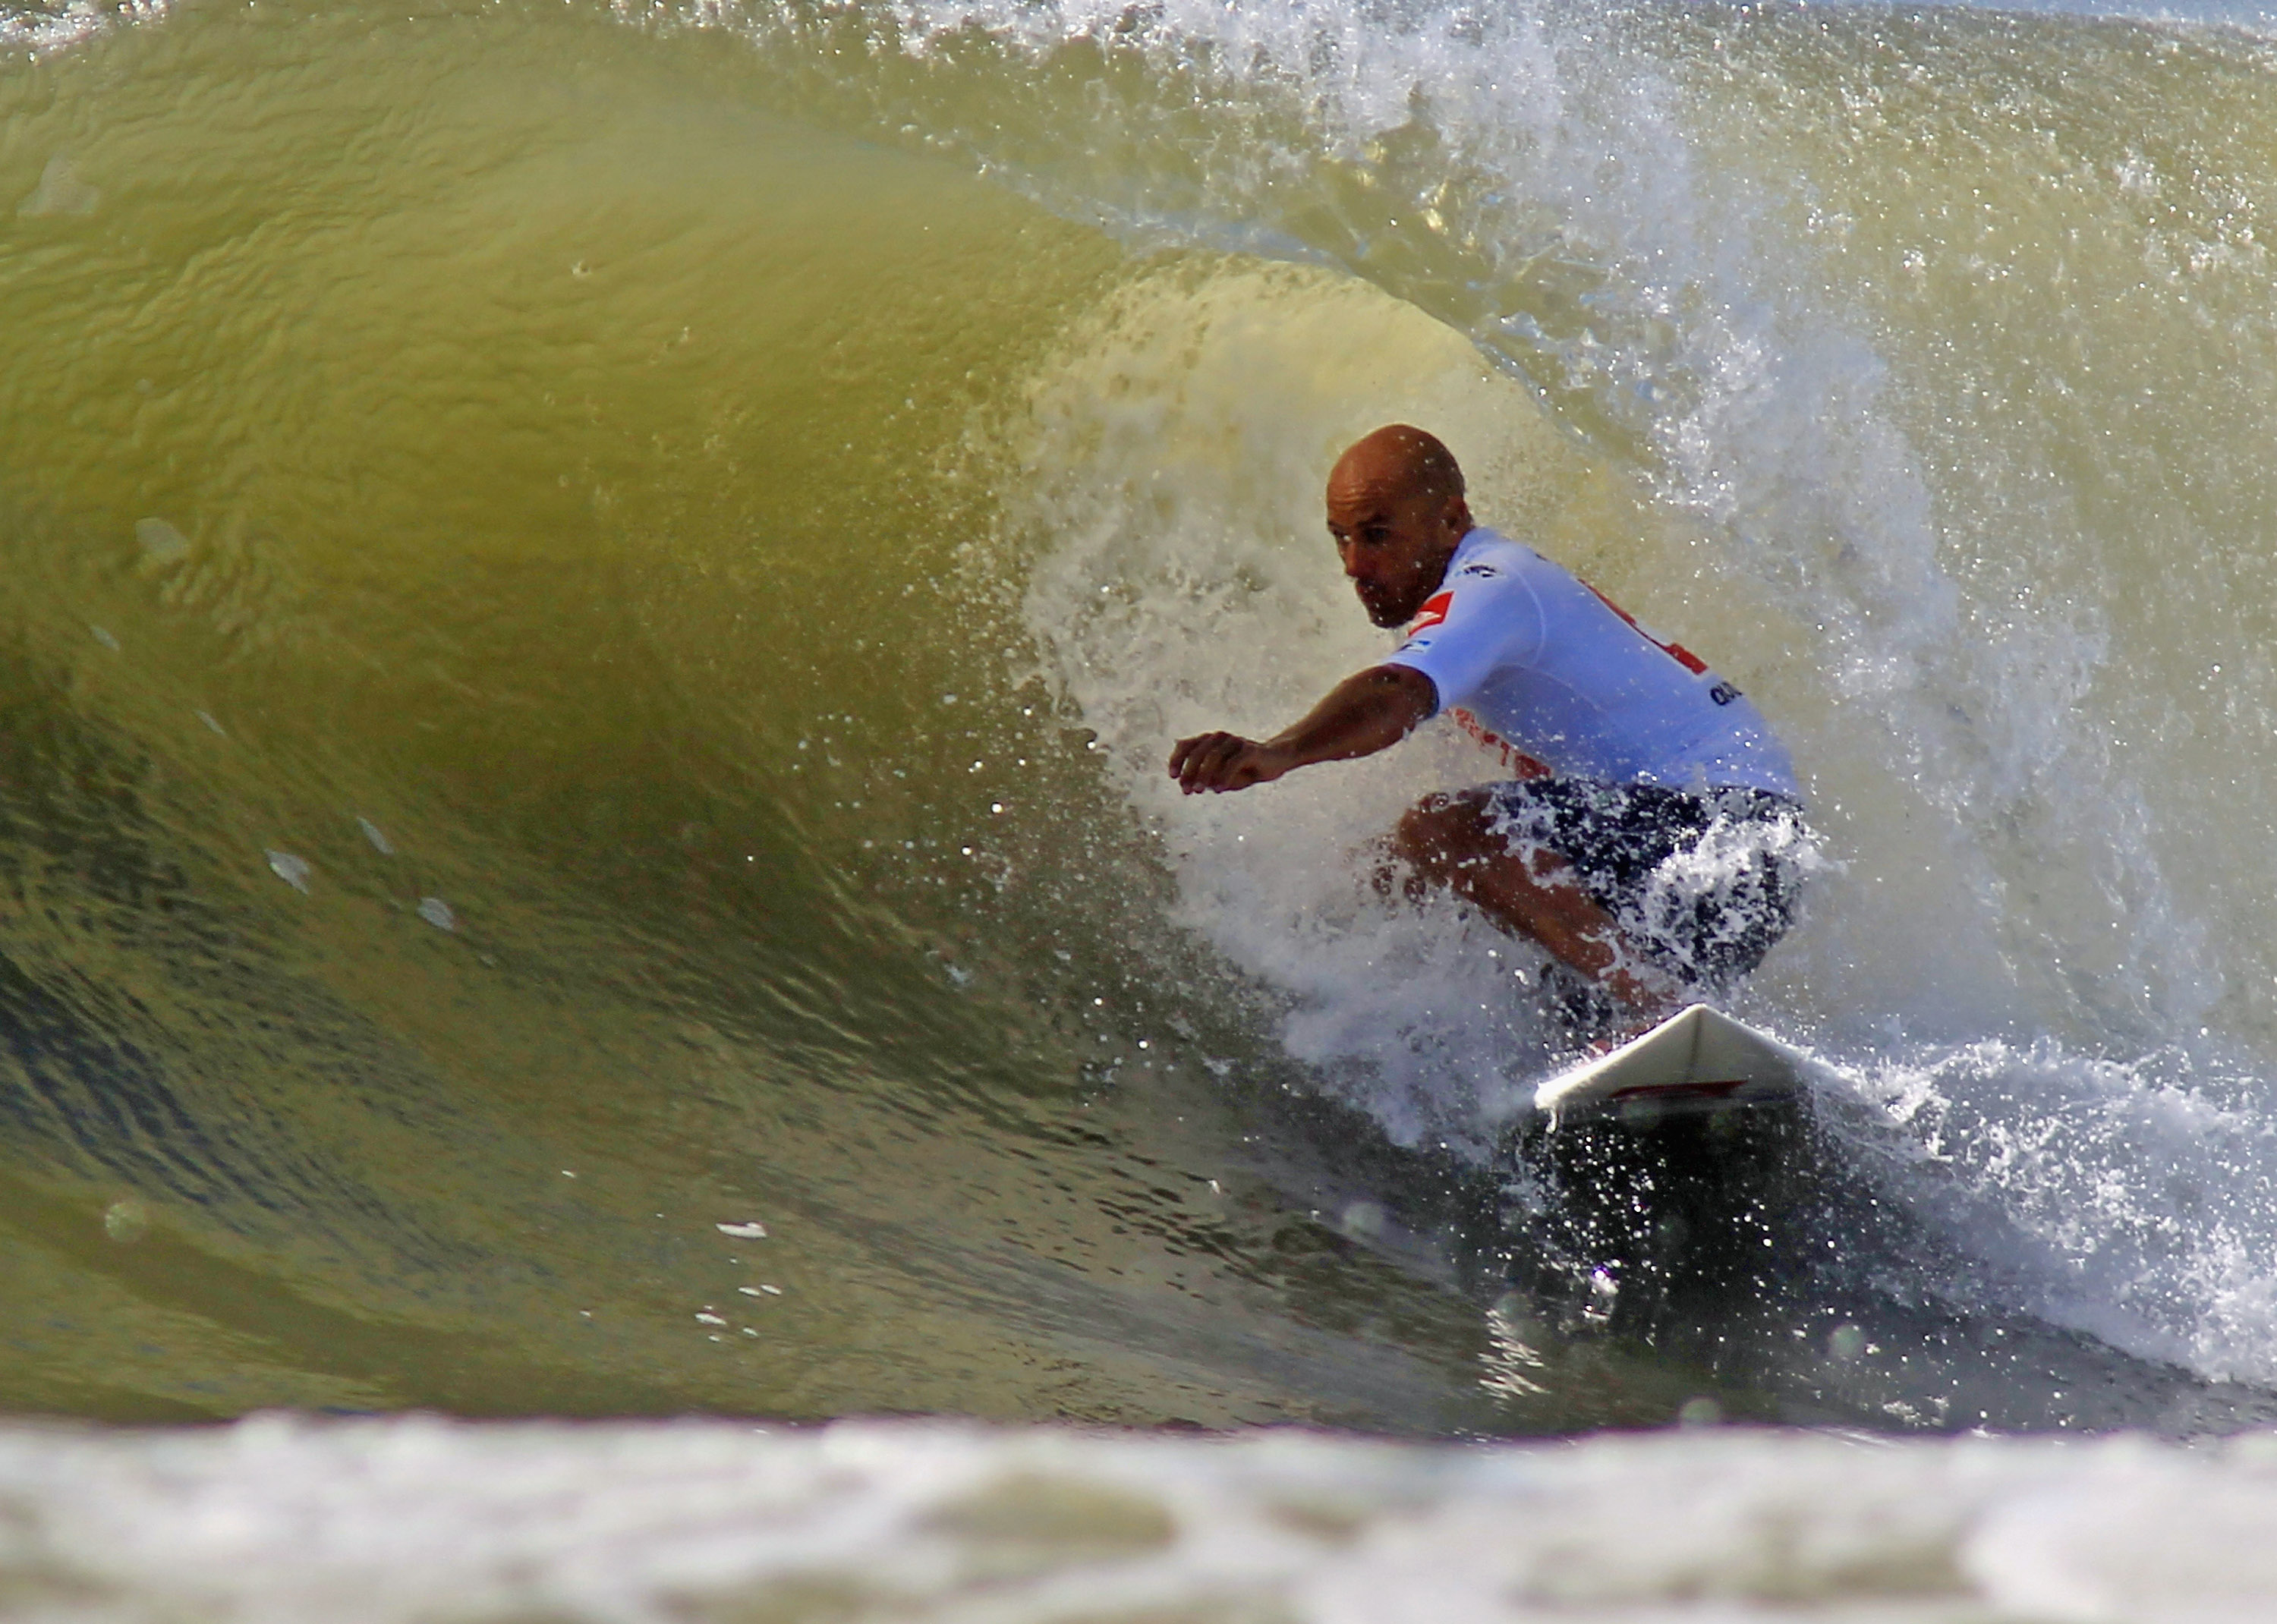 Kelly Slater World Surfing Champion s New Footage of His